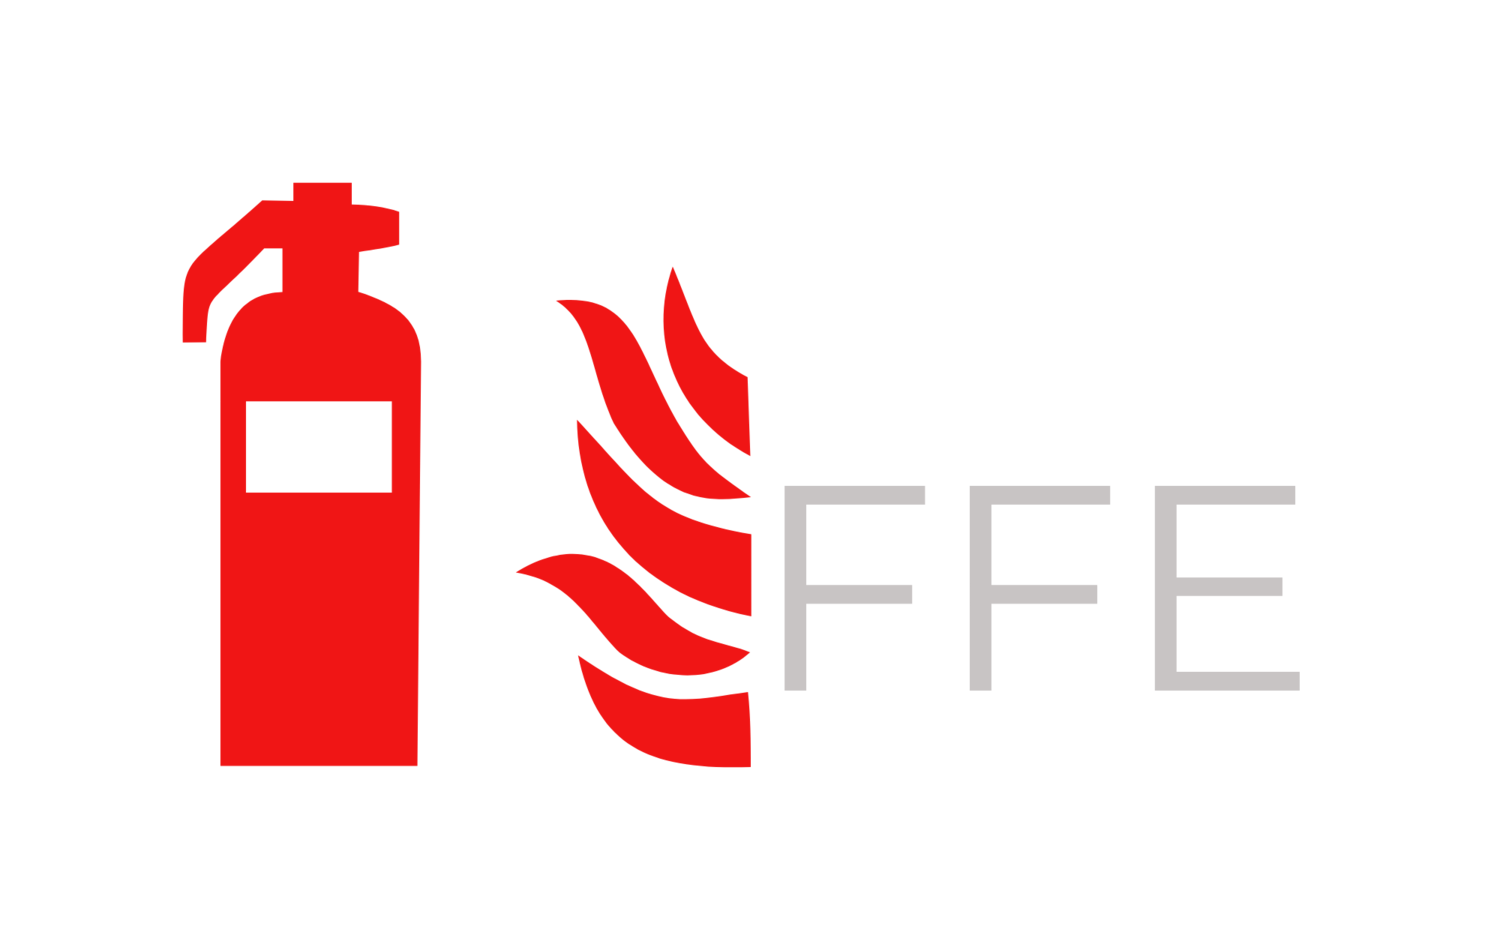 Fairfax Fire Extinguisher LLC